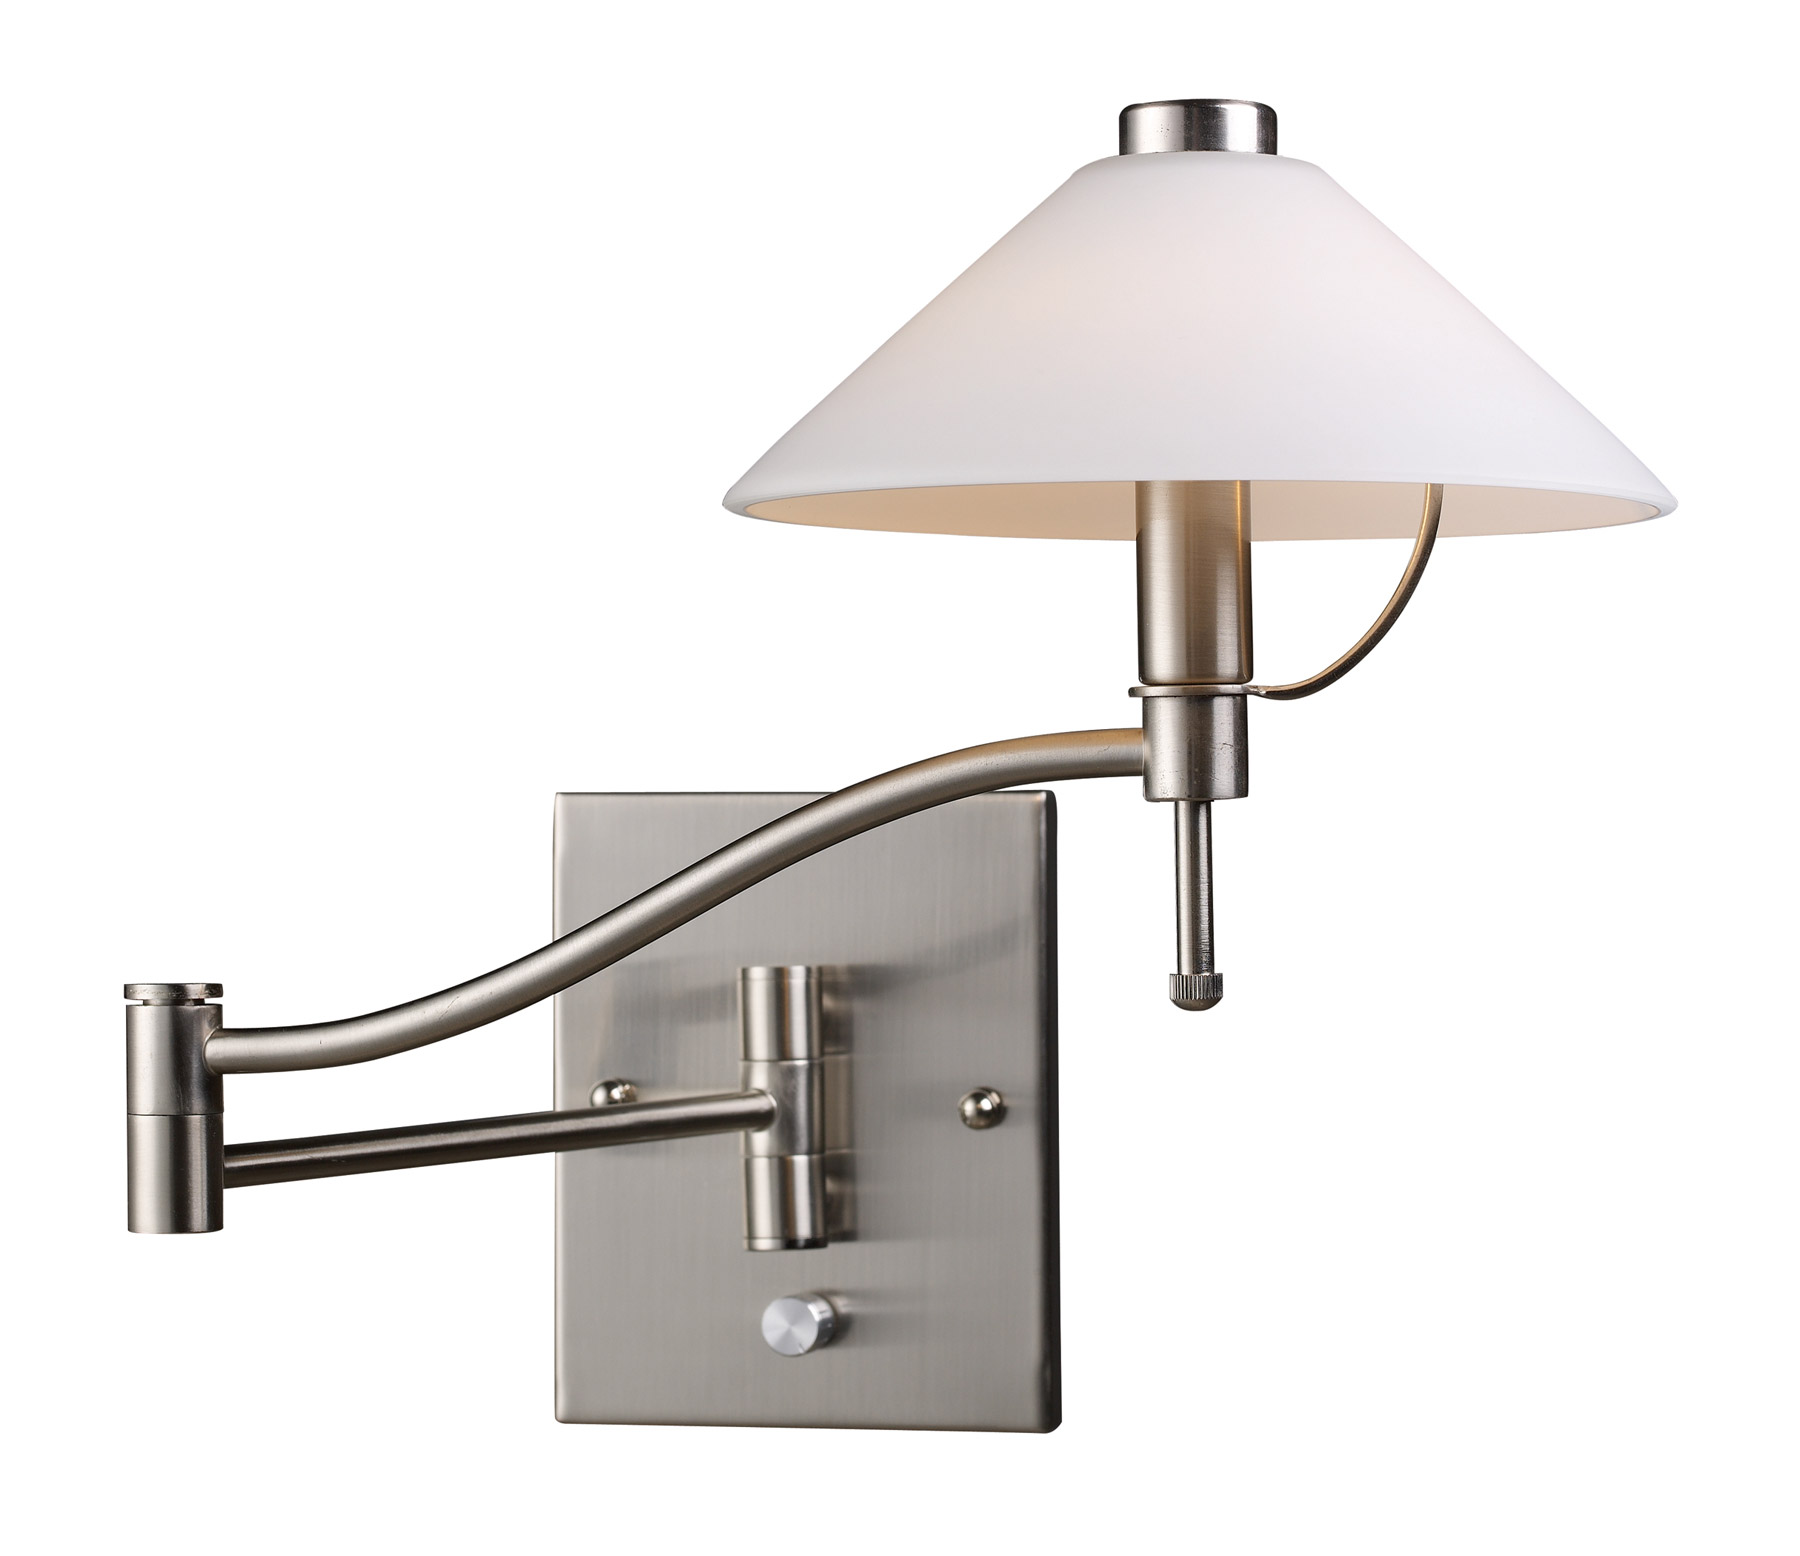 Wall Sconce Swing Arm Light : Elk Lighting 10112/1 Swingarm Swing Arm Wall Sconce